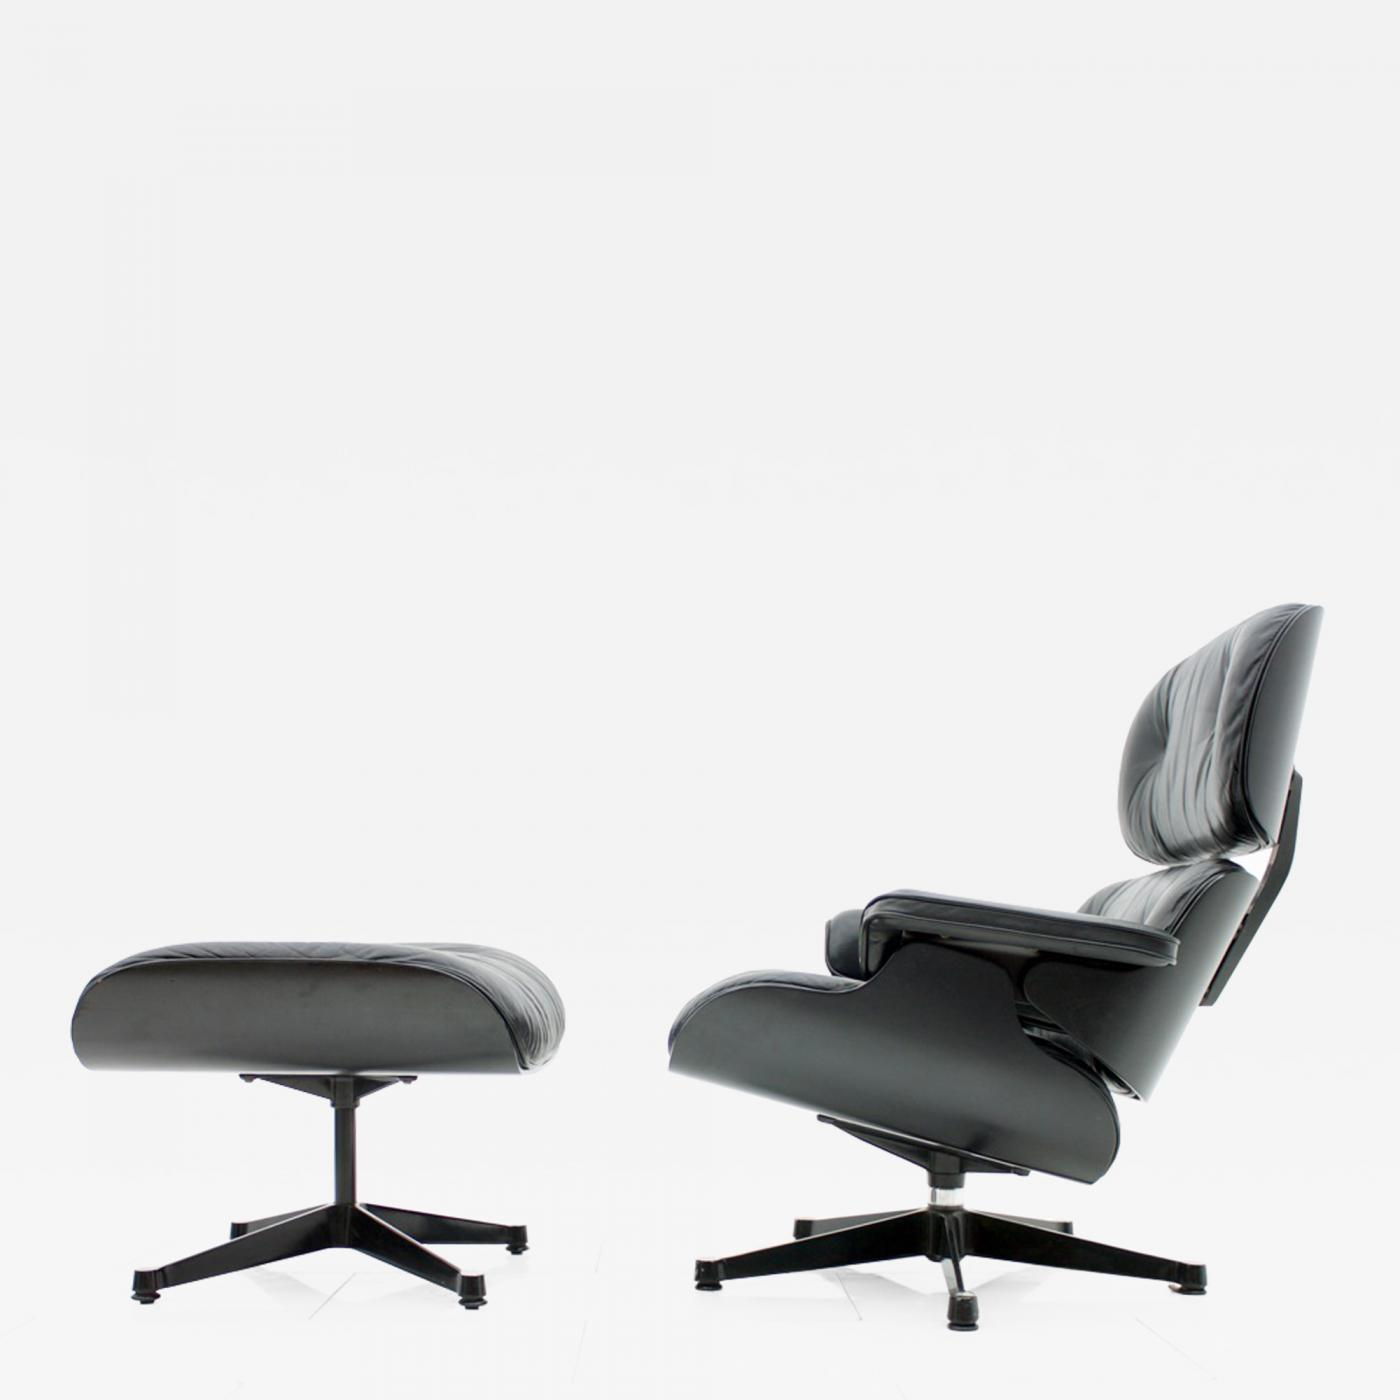 Phenomenal Charles Ray Eames Charles Eames Lounge Chair Black Black Cjindustries Chair Design For Home Cjindustriesco